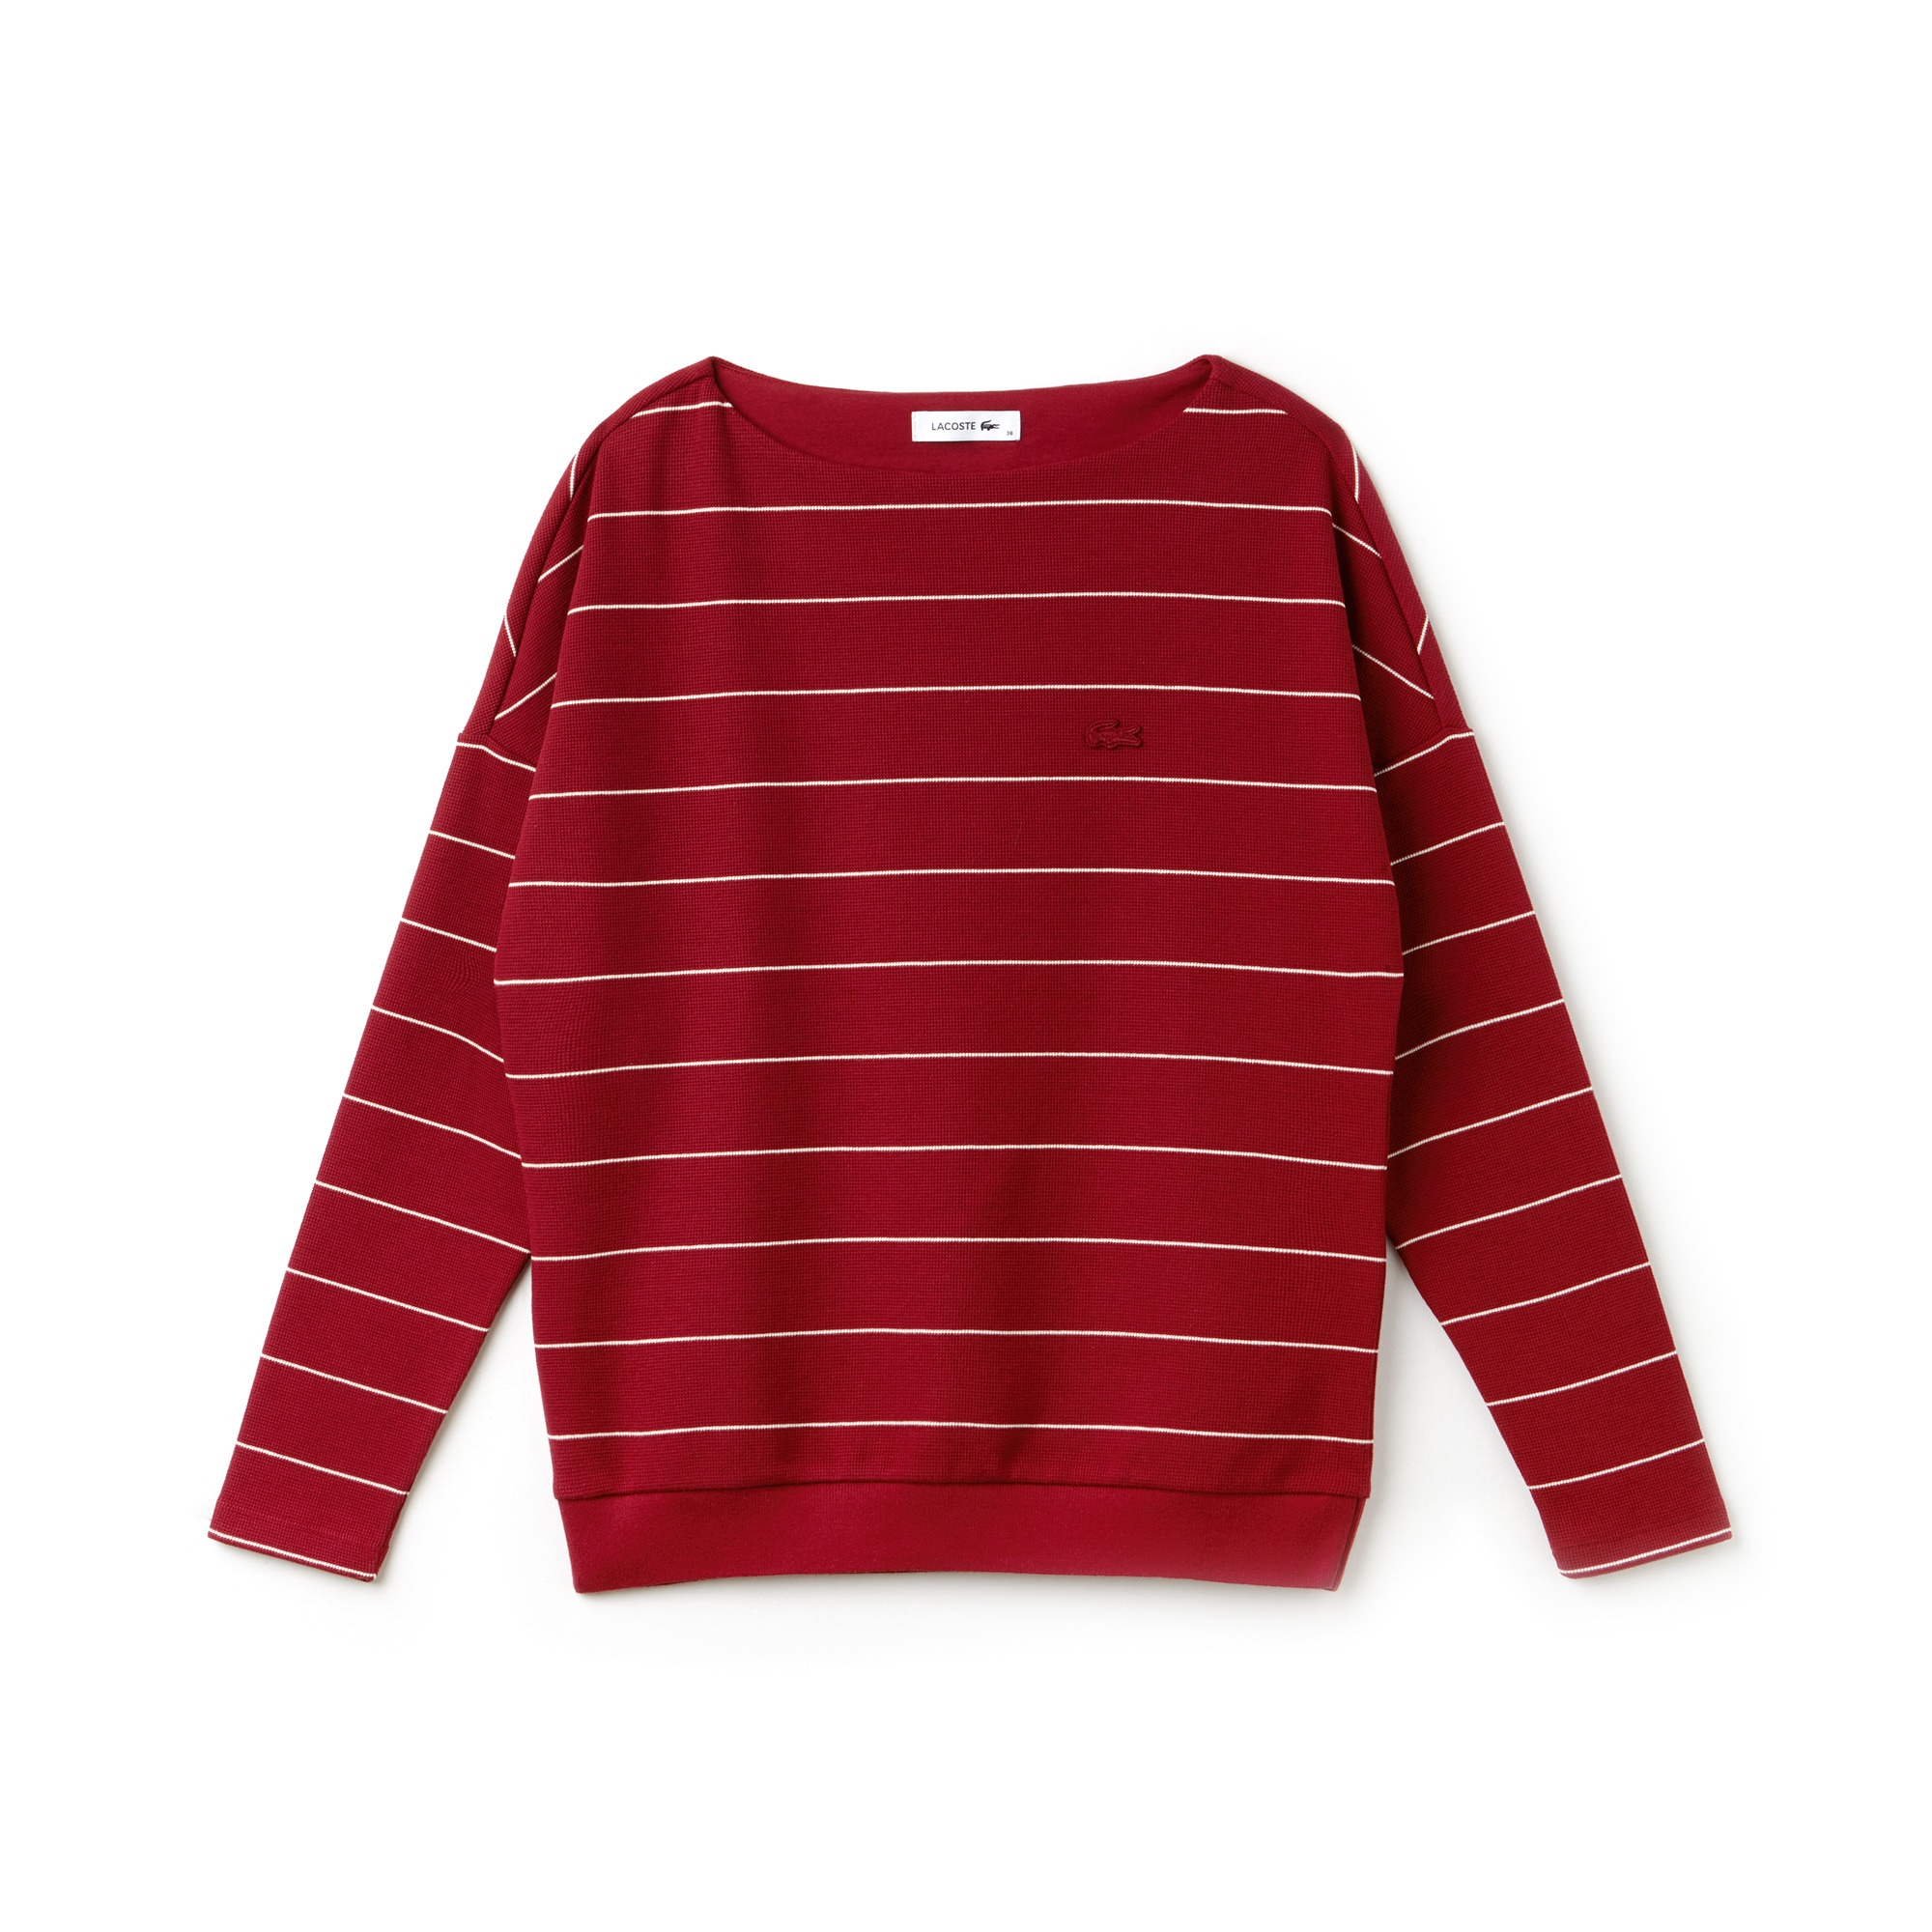 Women's Boat Neck Striped Cotton Honeycomb Sweatshirt